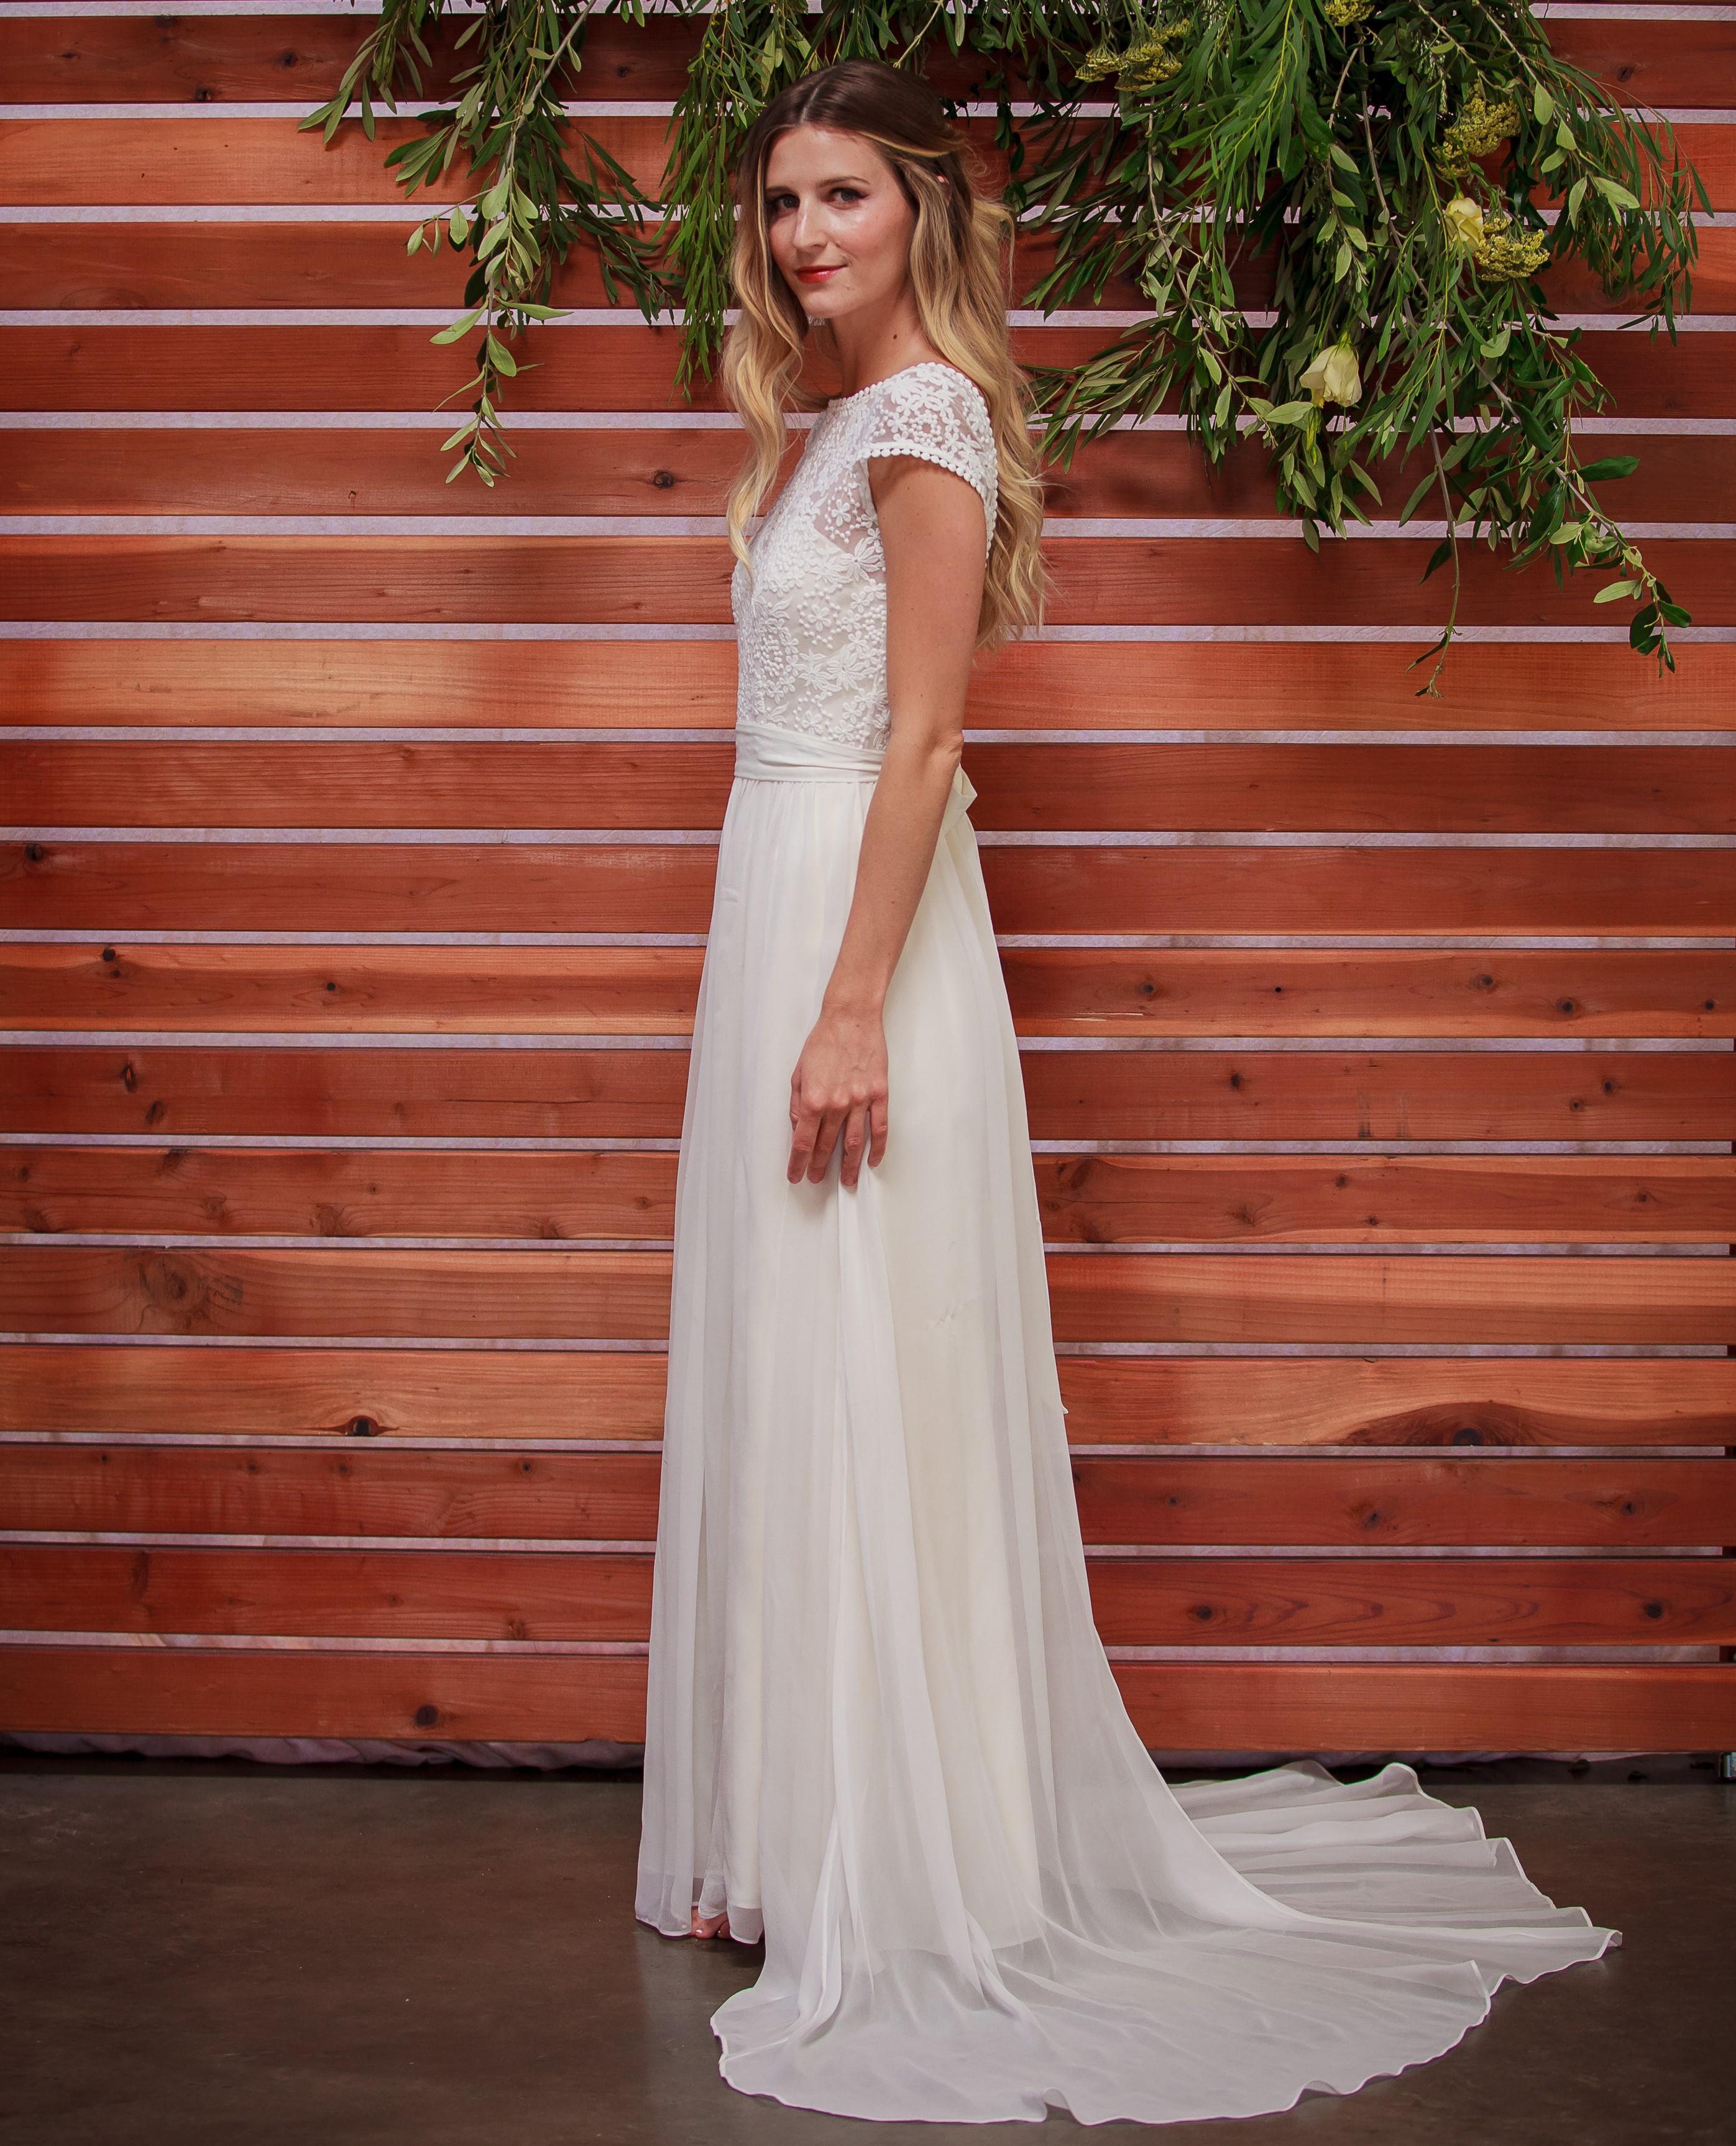 the-perfect-boho-wedding-dress-for-either-beach-or-outdoor-venue-lace-bodice-silk-skirt